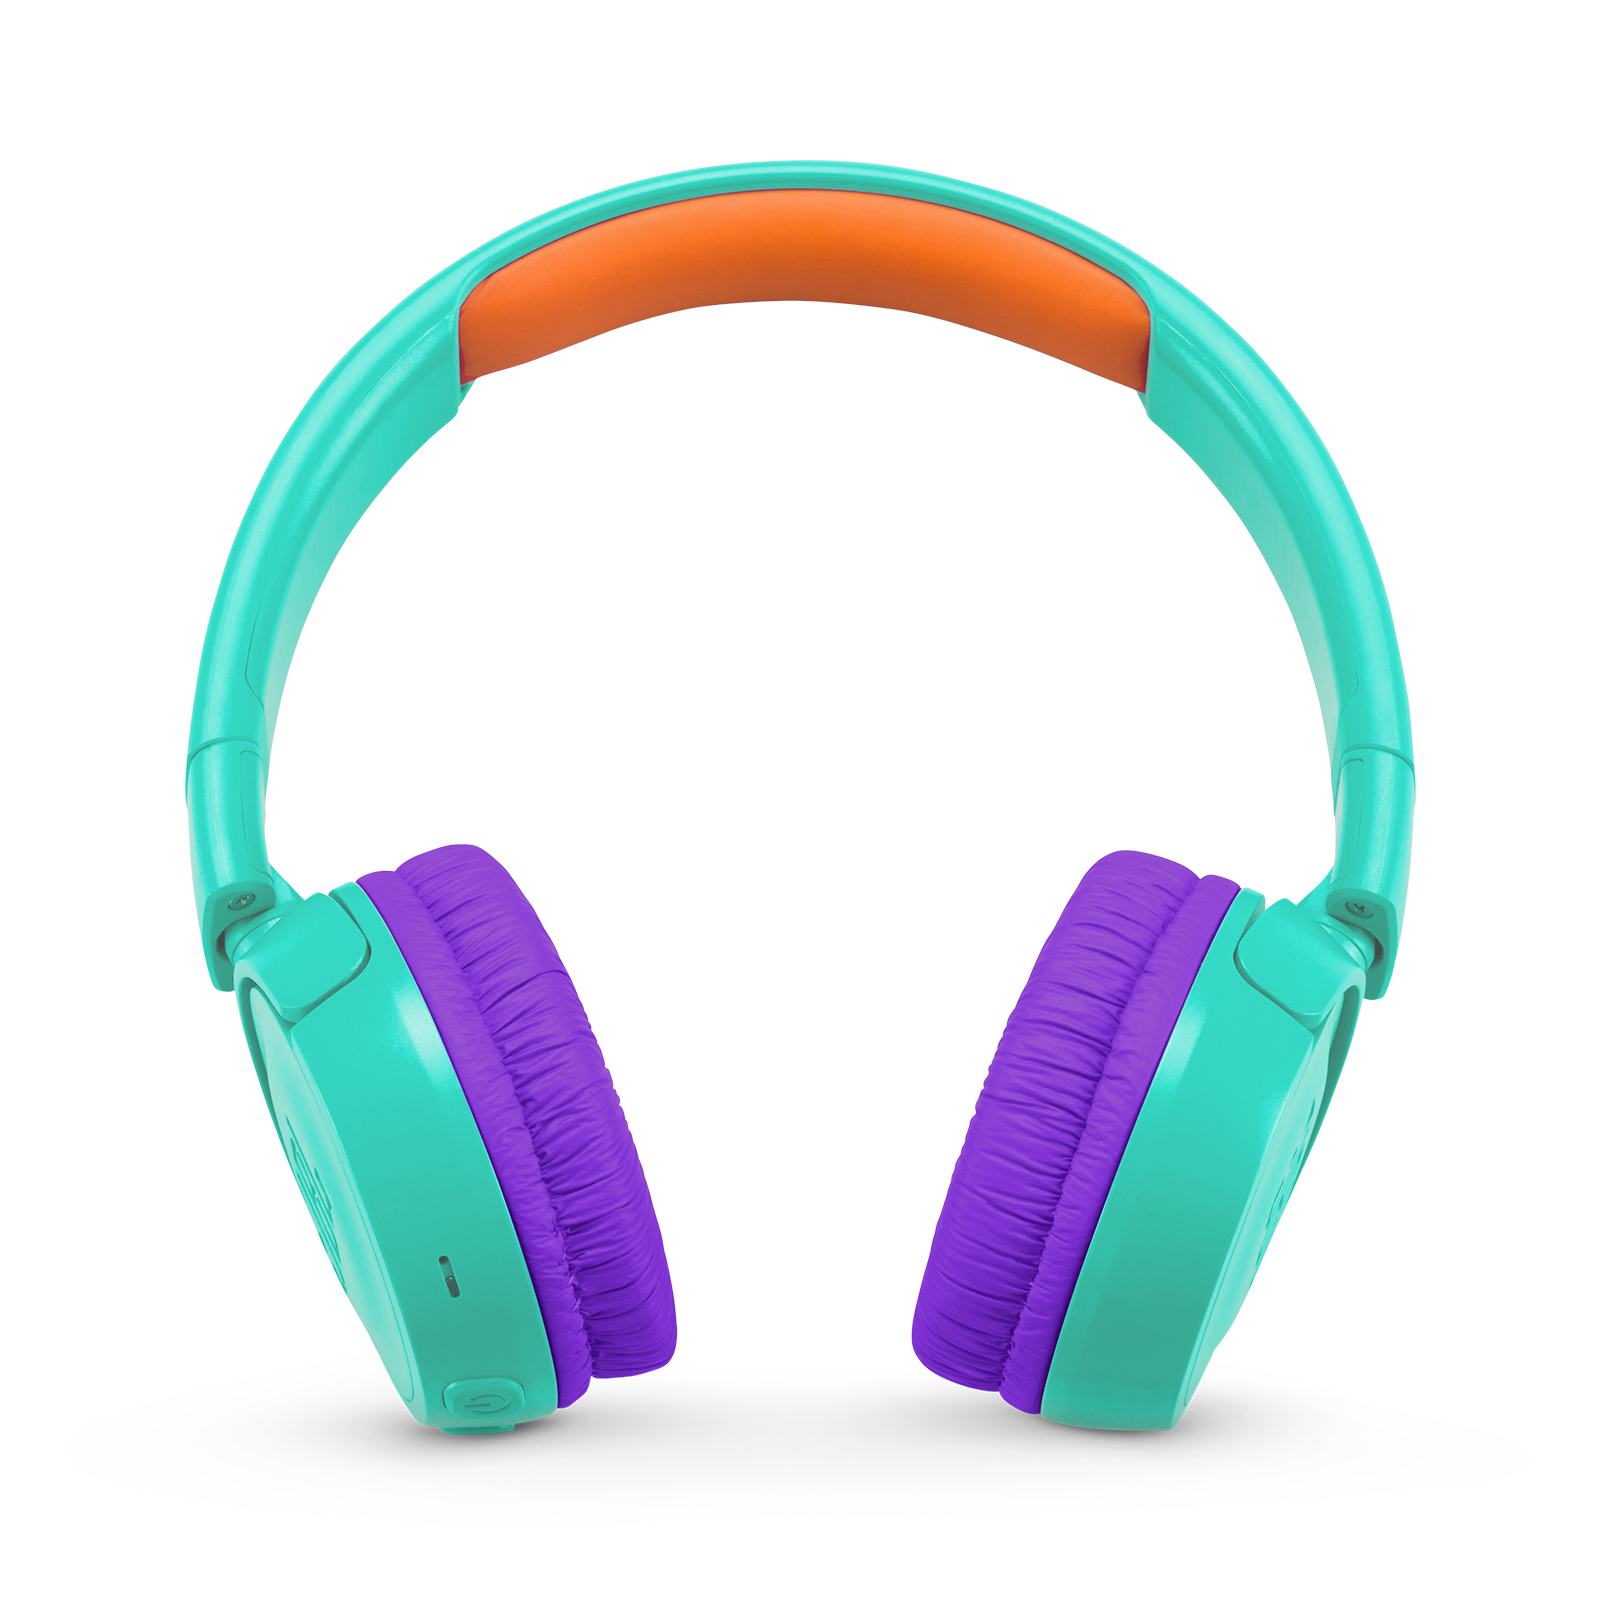 JBL JR300BT - Tropic Teal - Kids Wireless on-ear headphones - Front